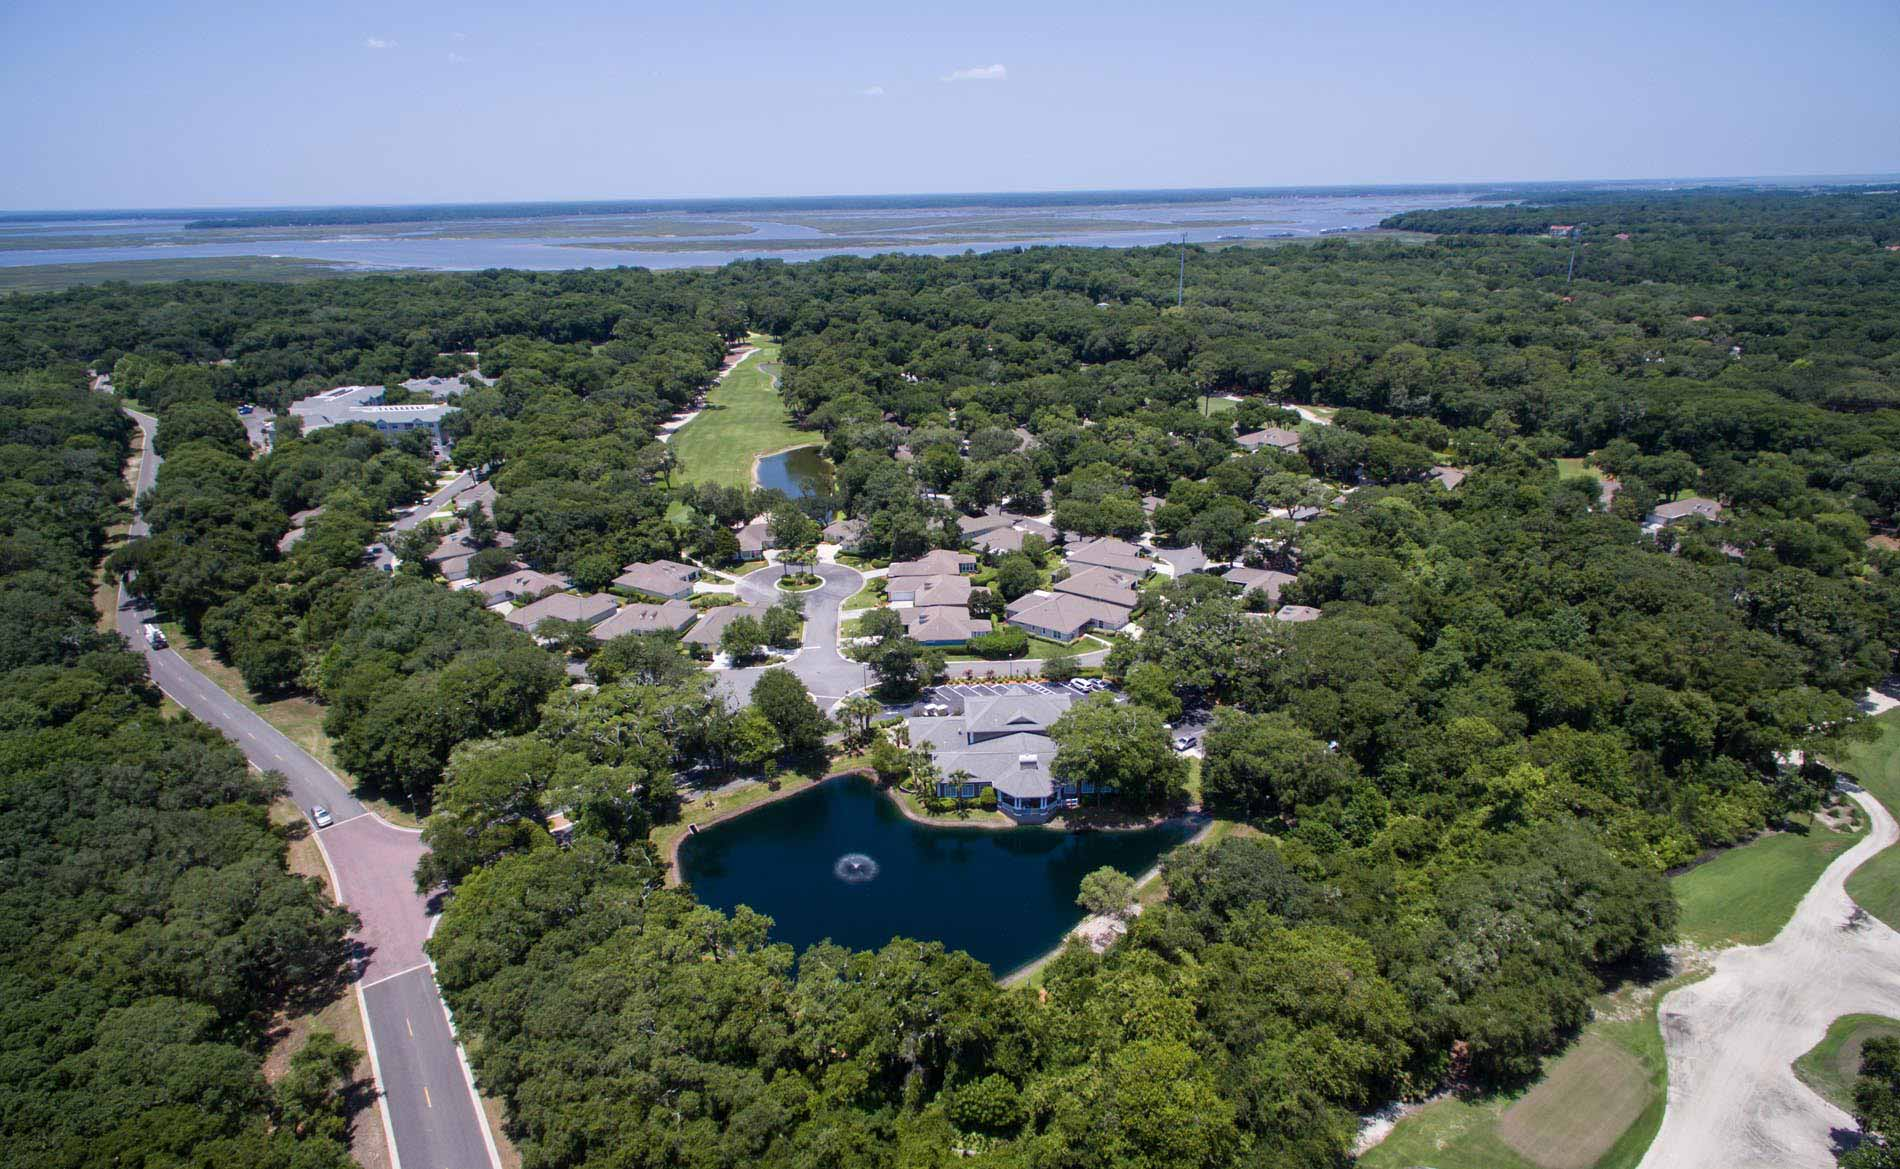 Osprey Village Retirement Community